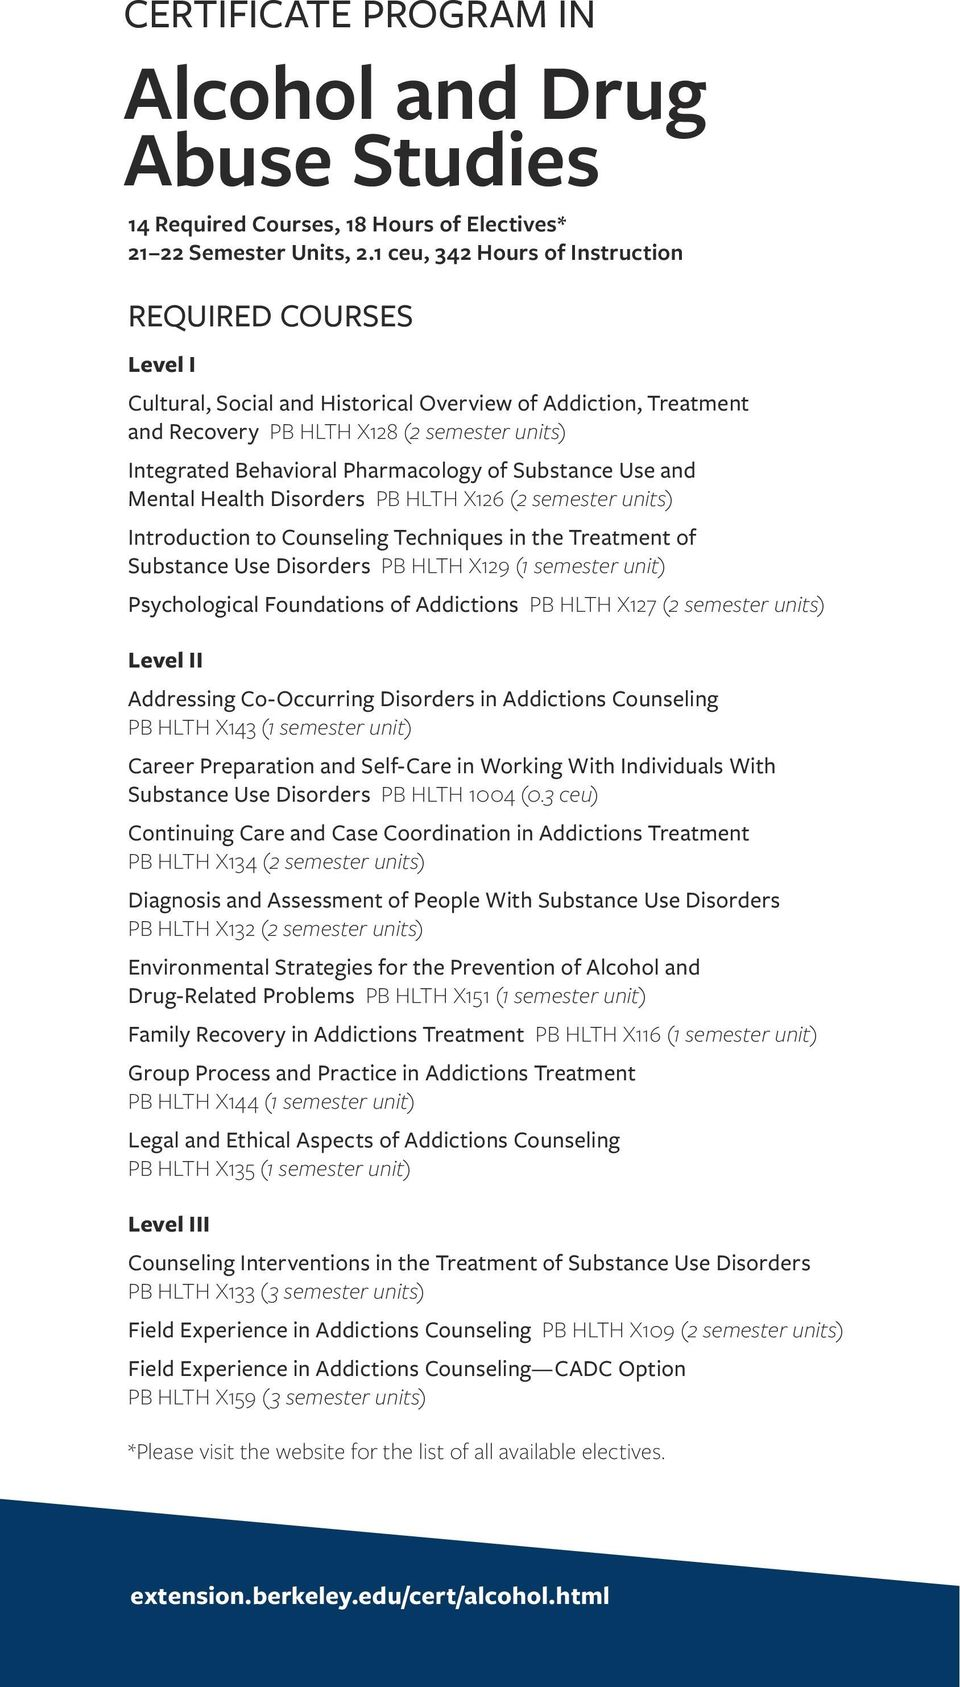 Pharmacology of Substance Use and Mental Health Disorders PB HLTH X126 (2 semester units) Introduction to Counseling Techniques in the Treatment of Substance Use Disorders PB HLTH X129 (1 semester